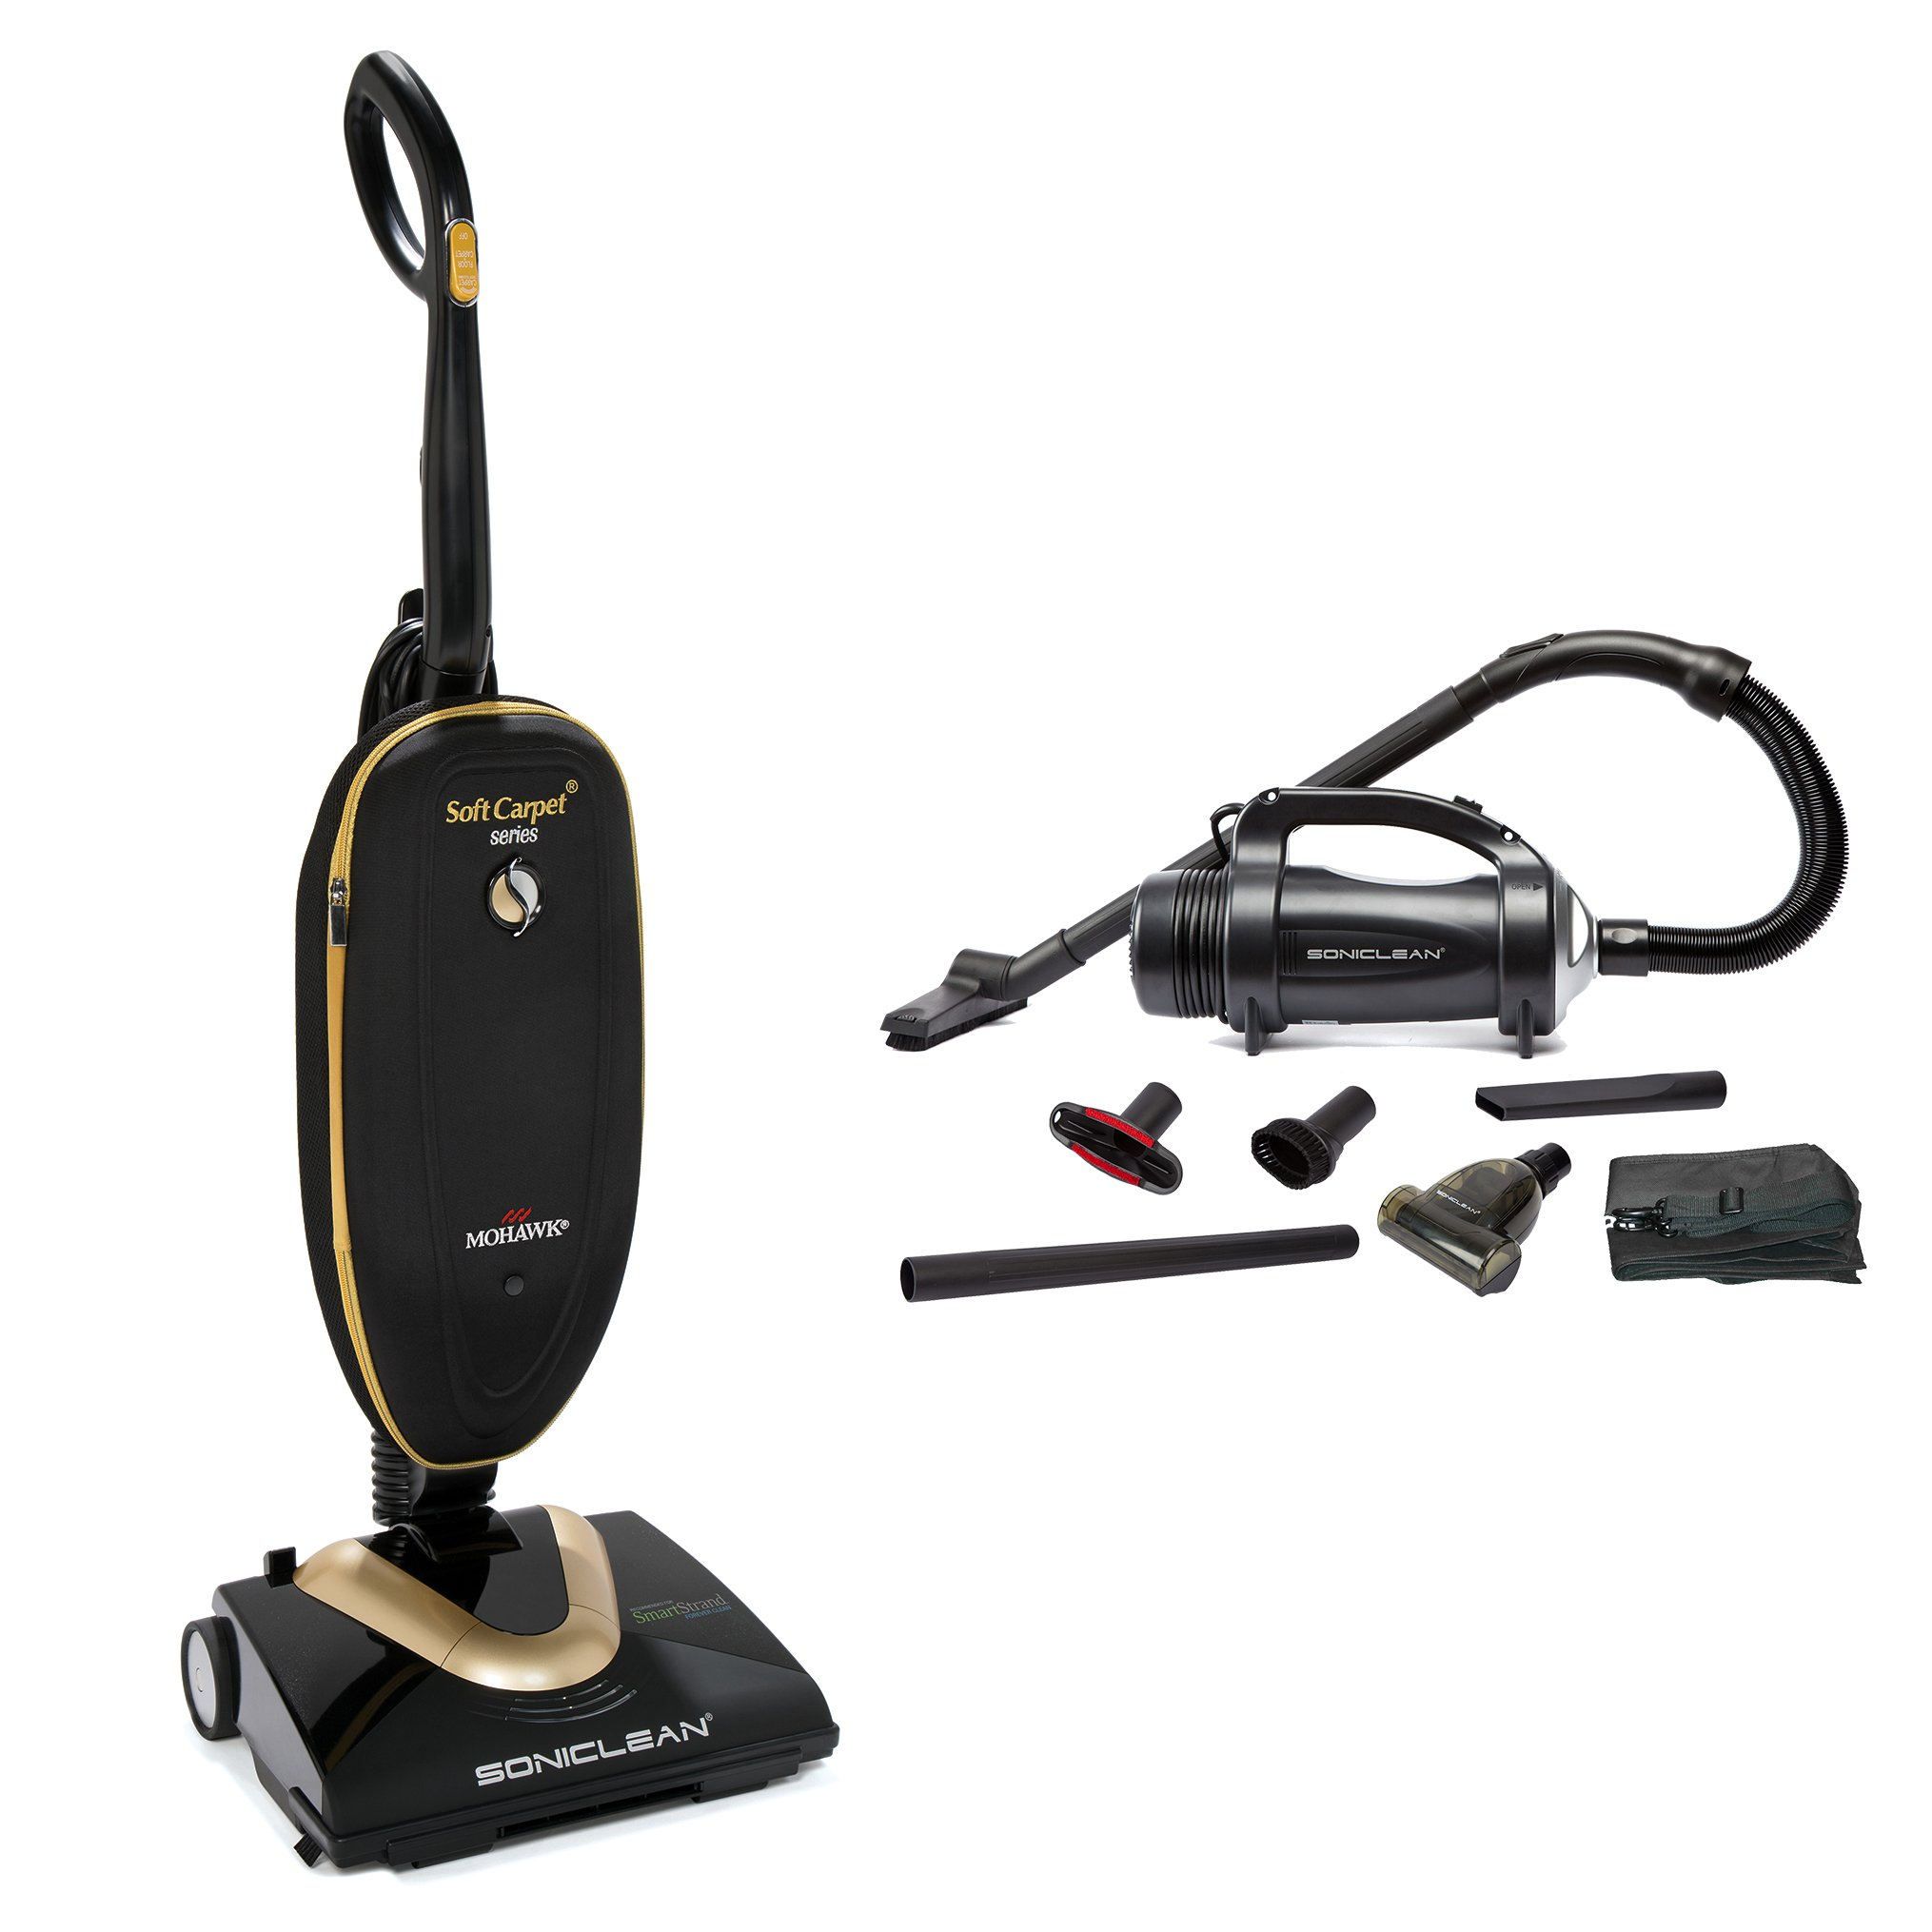 Soniclean Soft Carpet Vacuum Cleaner/Handheld Combo by Soniclean